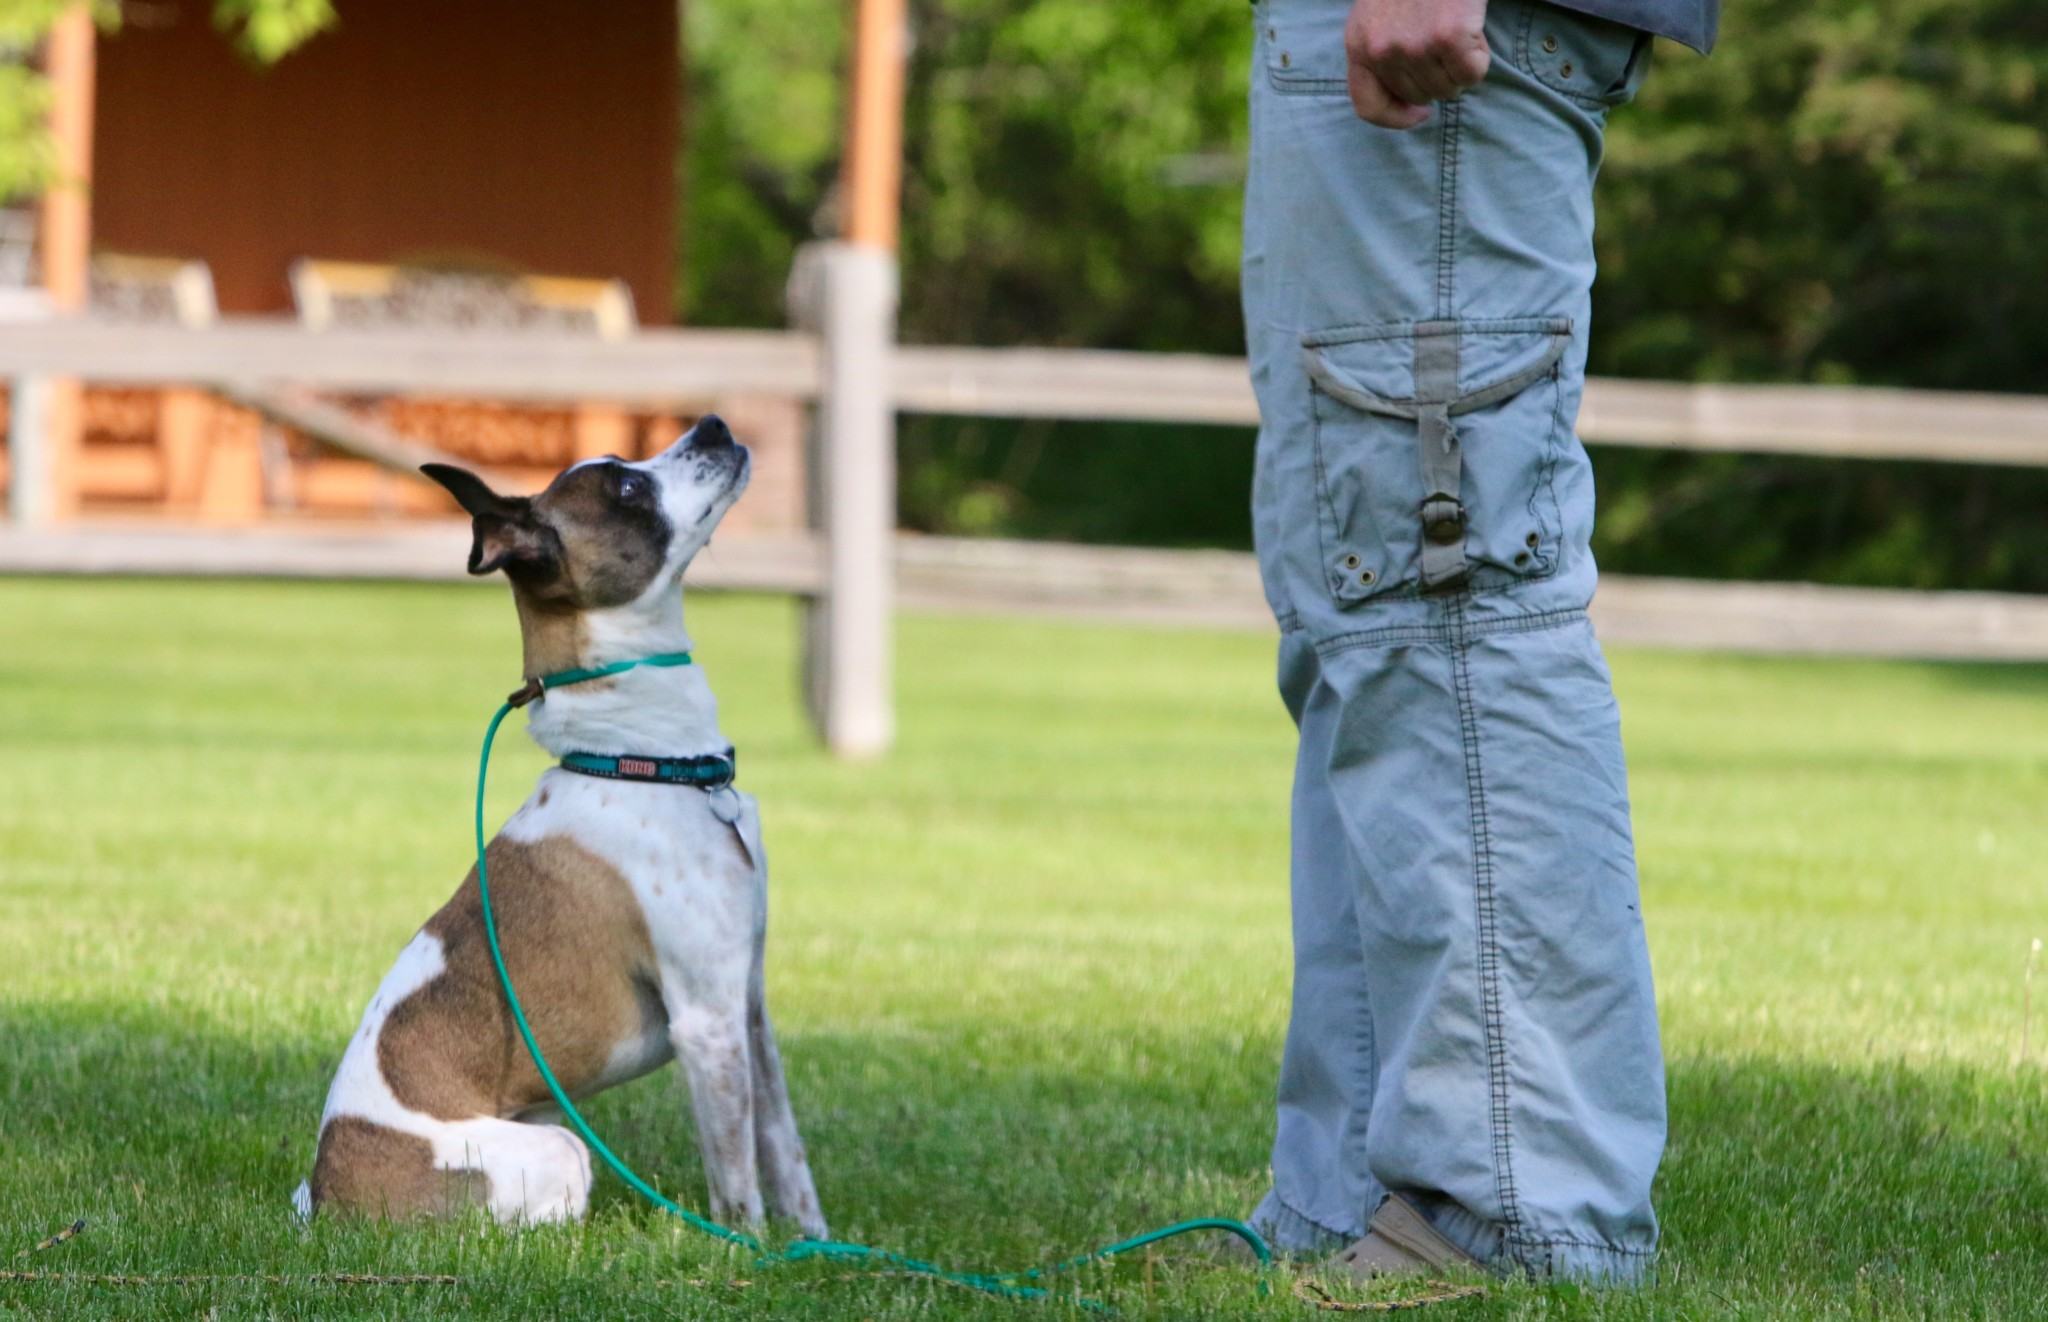 5 keys to a successful dog training session